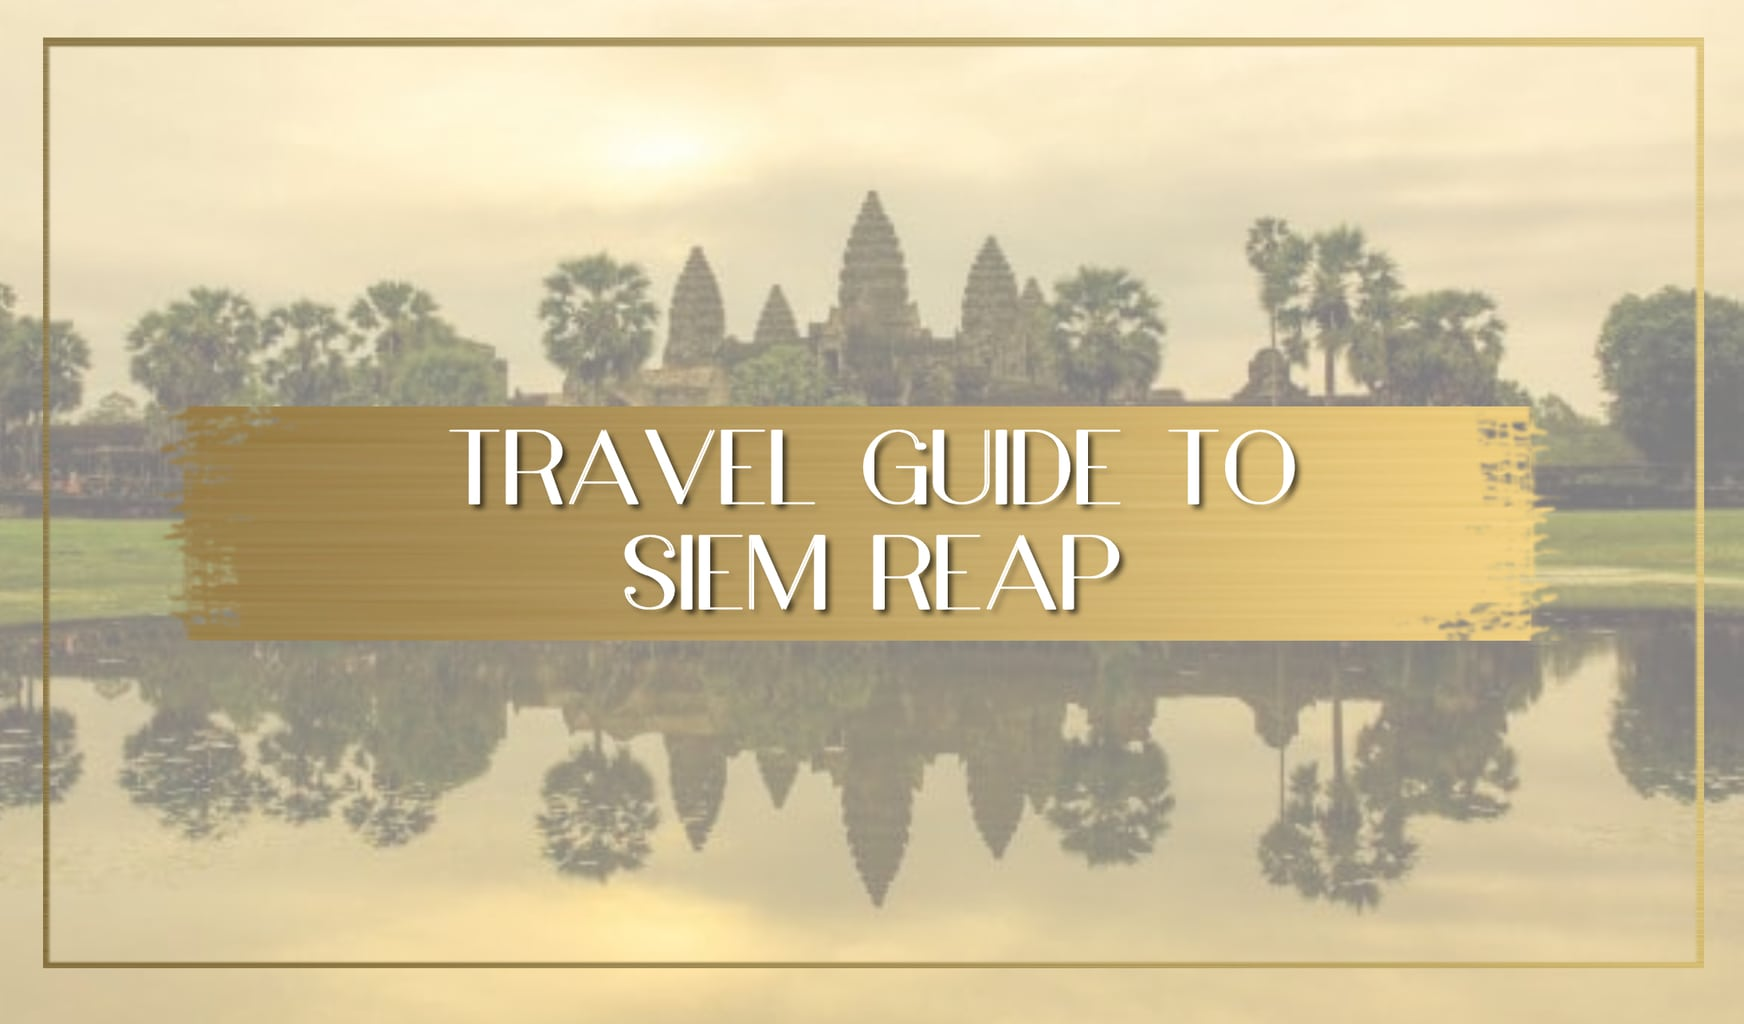 Travel guide to Siem Reap main